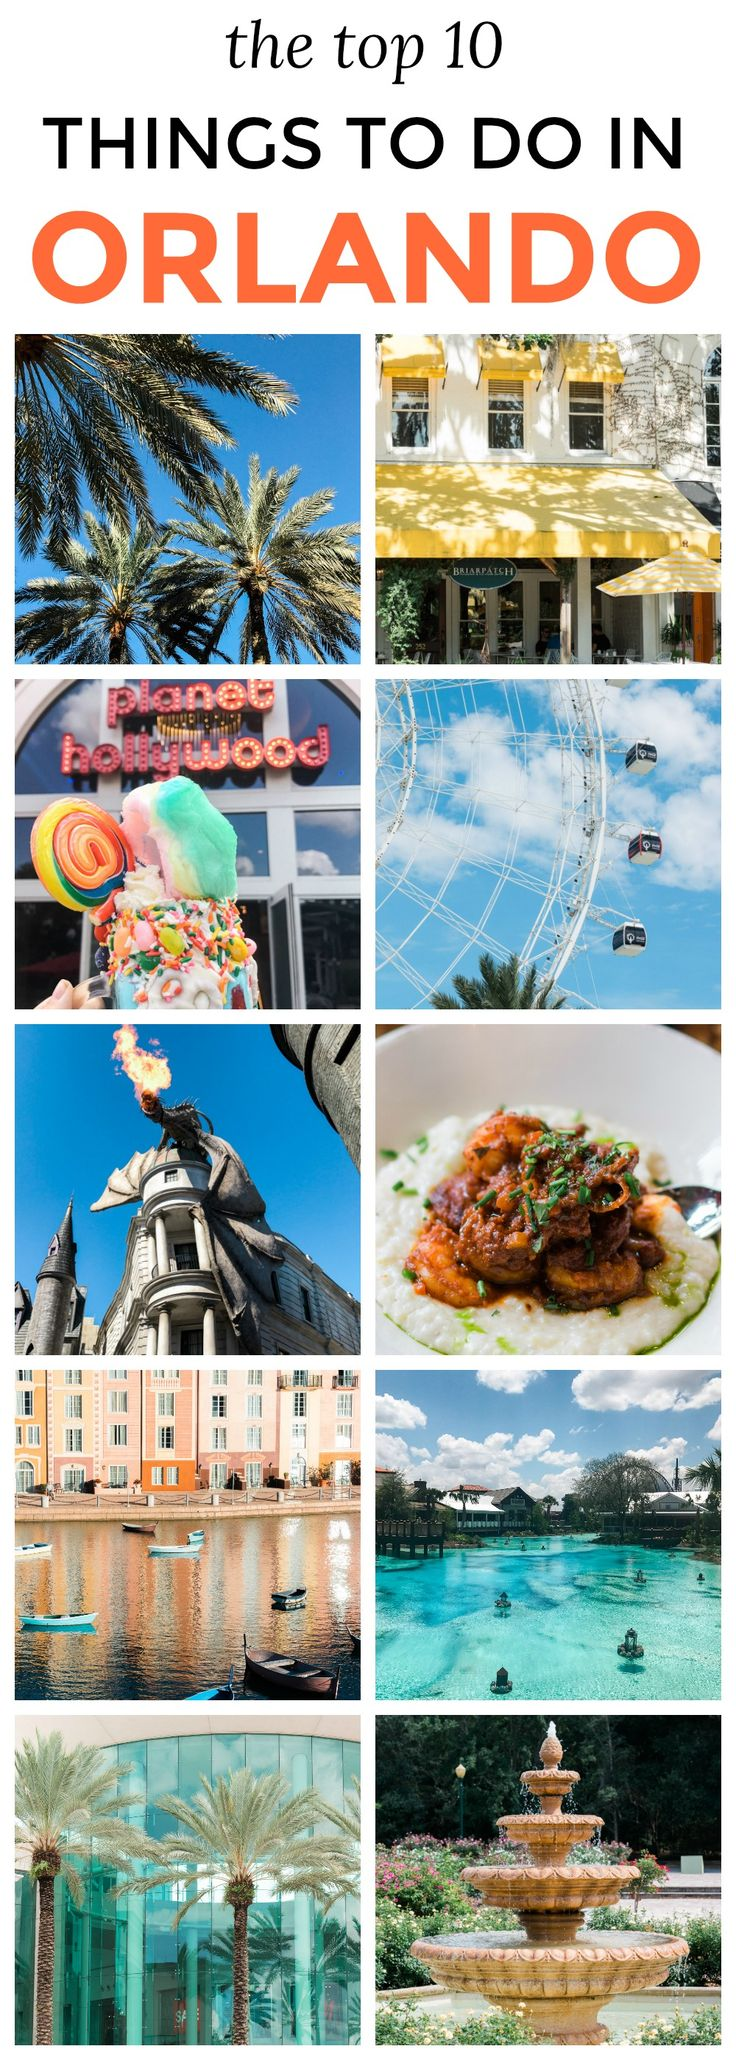 The top 10 things to do in Orlando, Florida!   Planning a trip to Orlando? I've rounded up the top 10 things to do in Orlando, Florida, that are guaranteed to make your trip a success. Whether you're moving to Orlando or just headed in on vacation, you will LOVE this list of fun activities in Orlando by Florida travel blogger Ashley Brooke Nicholas #CORTatHome sponsored by @cortfurniture affordable travel tips, orlando vacation tips, vacation tips, orlando eye, leu gardens, universal…